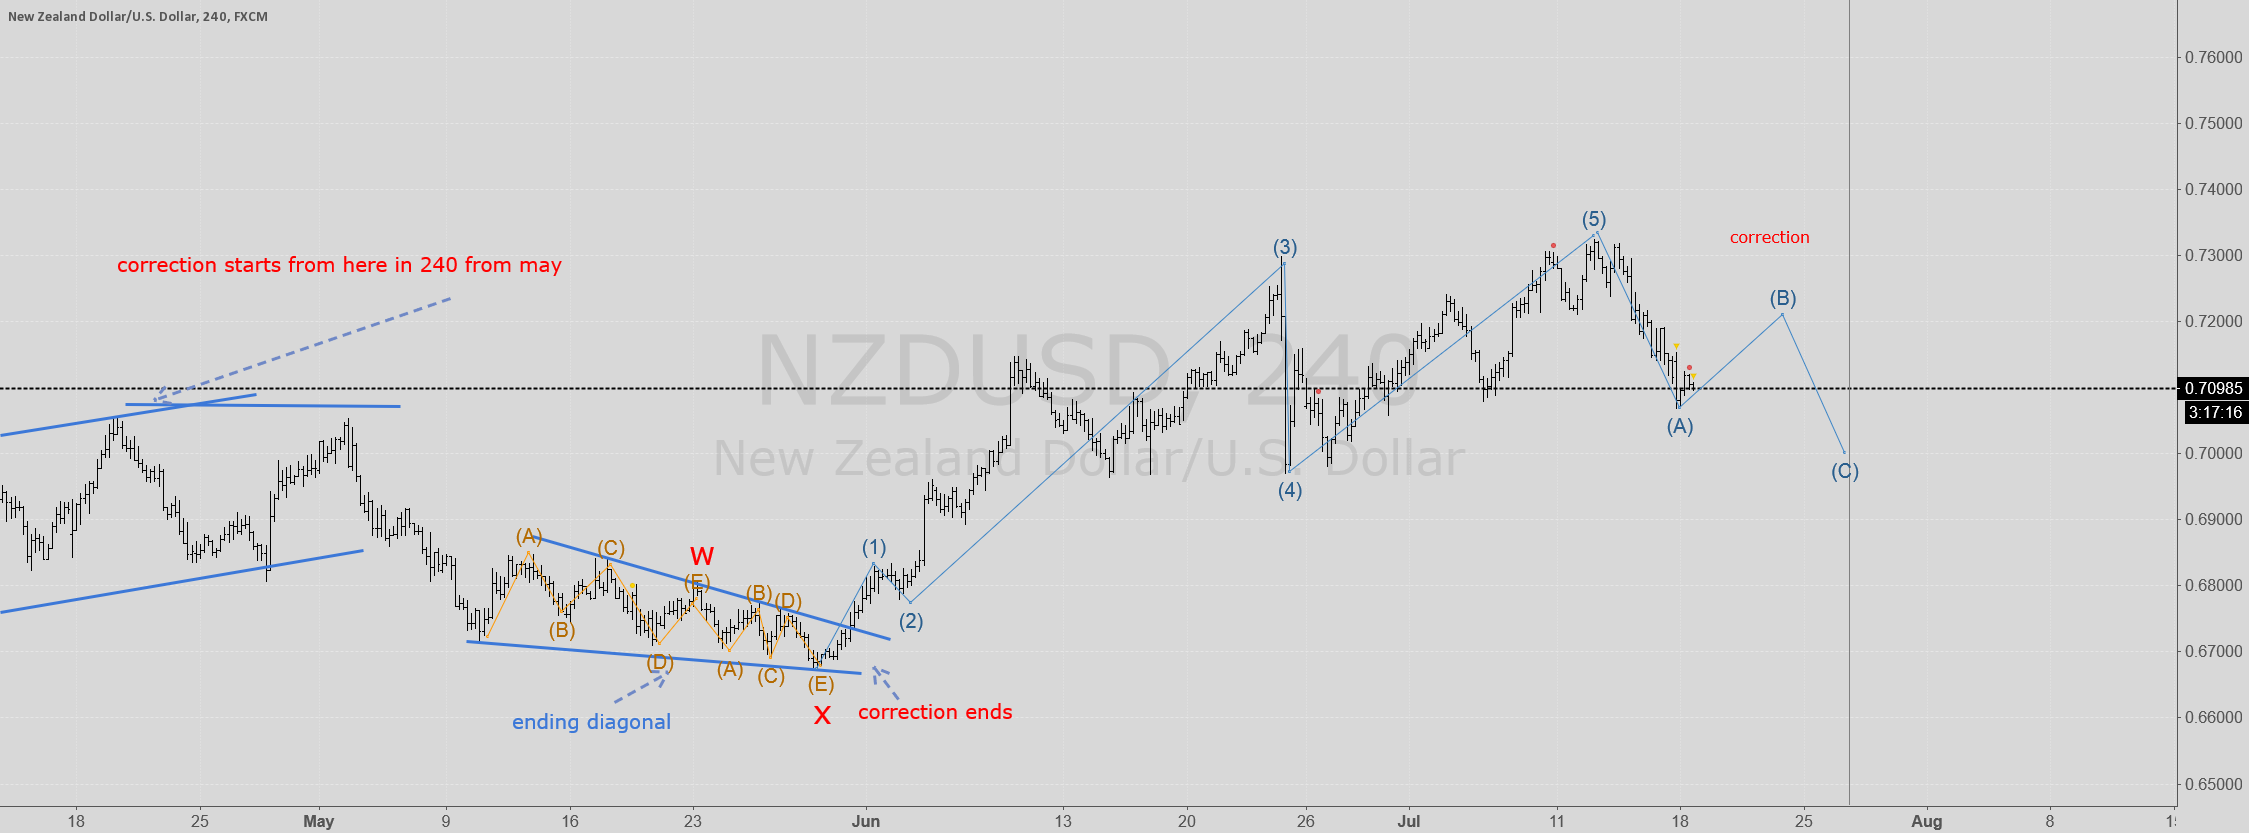 NZDUSD is in correction again